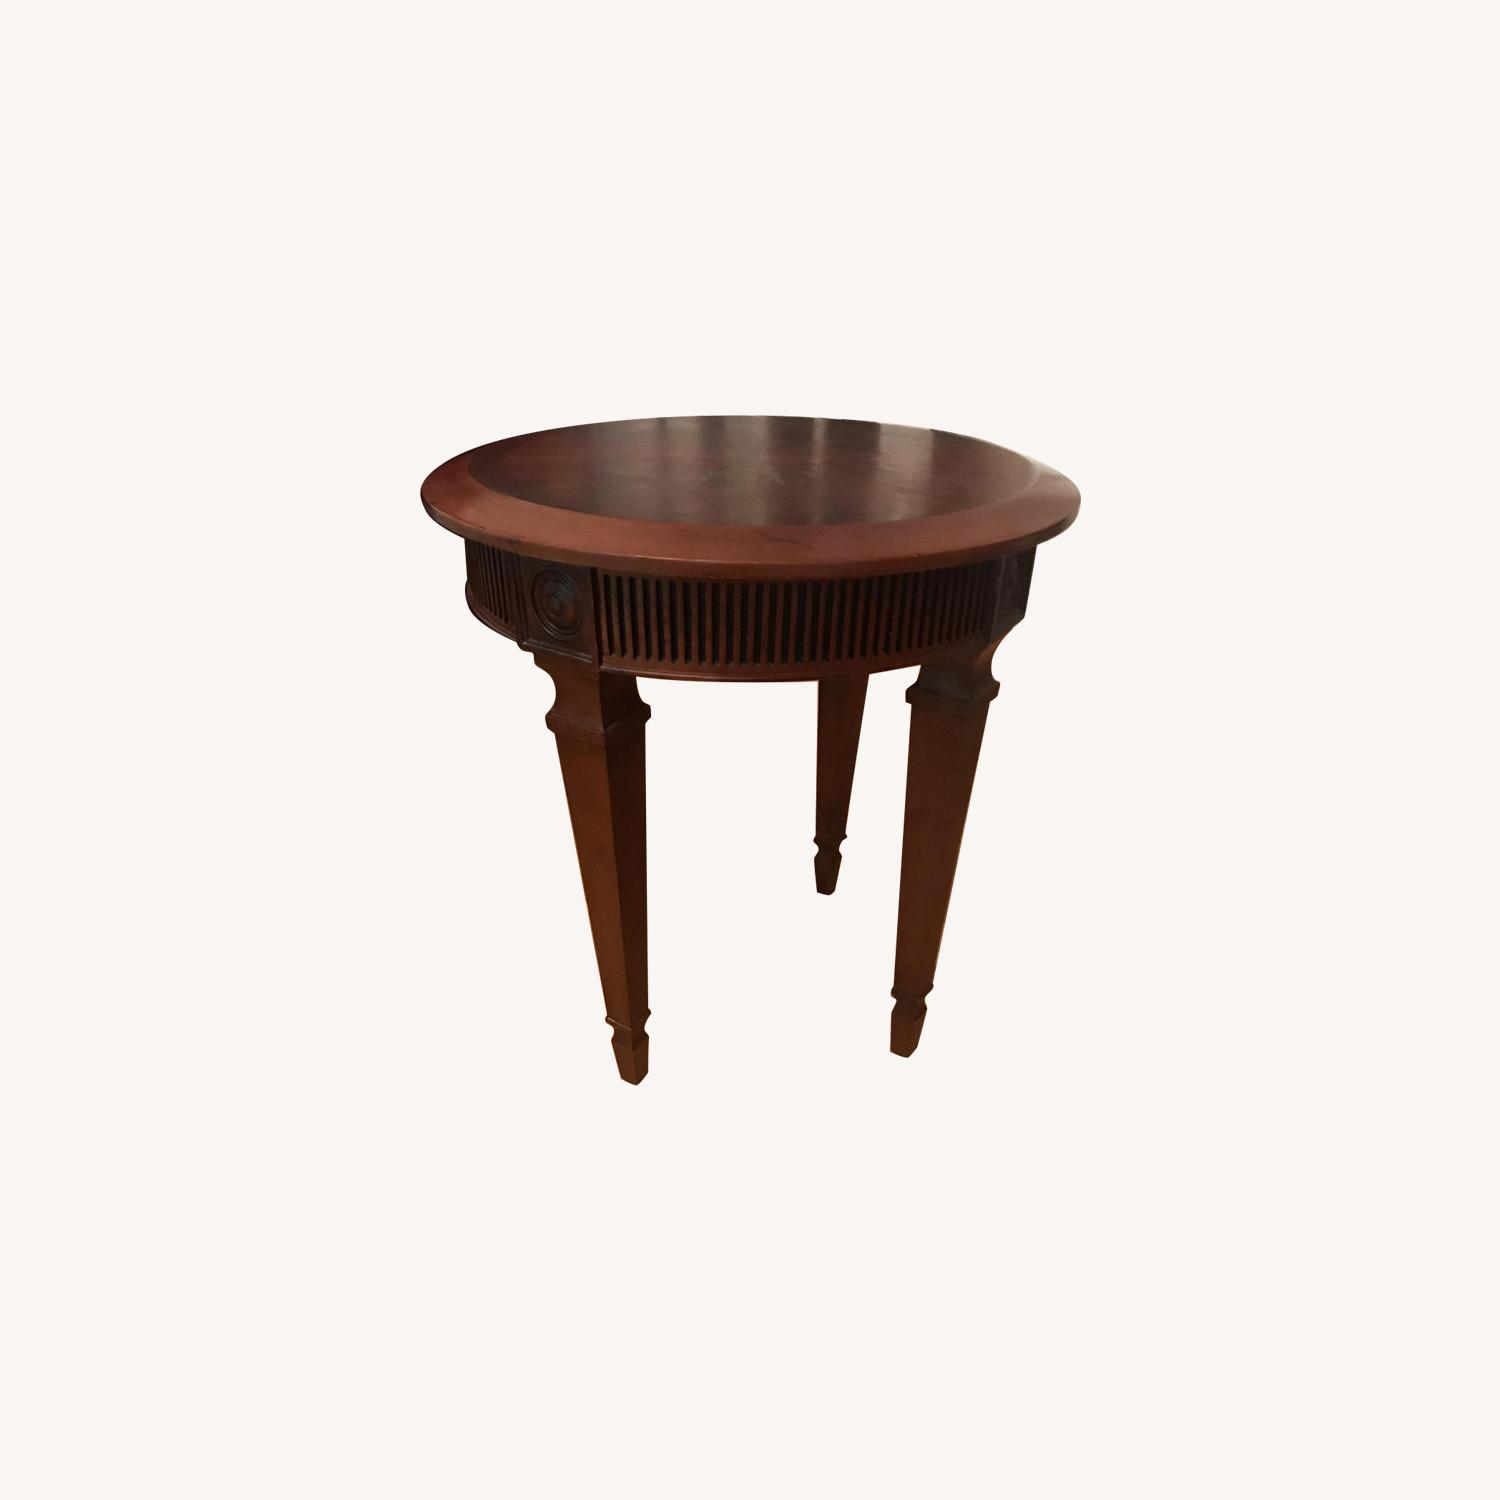 Bombay Company Antique-Style Side Tables - image-0